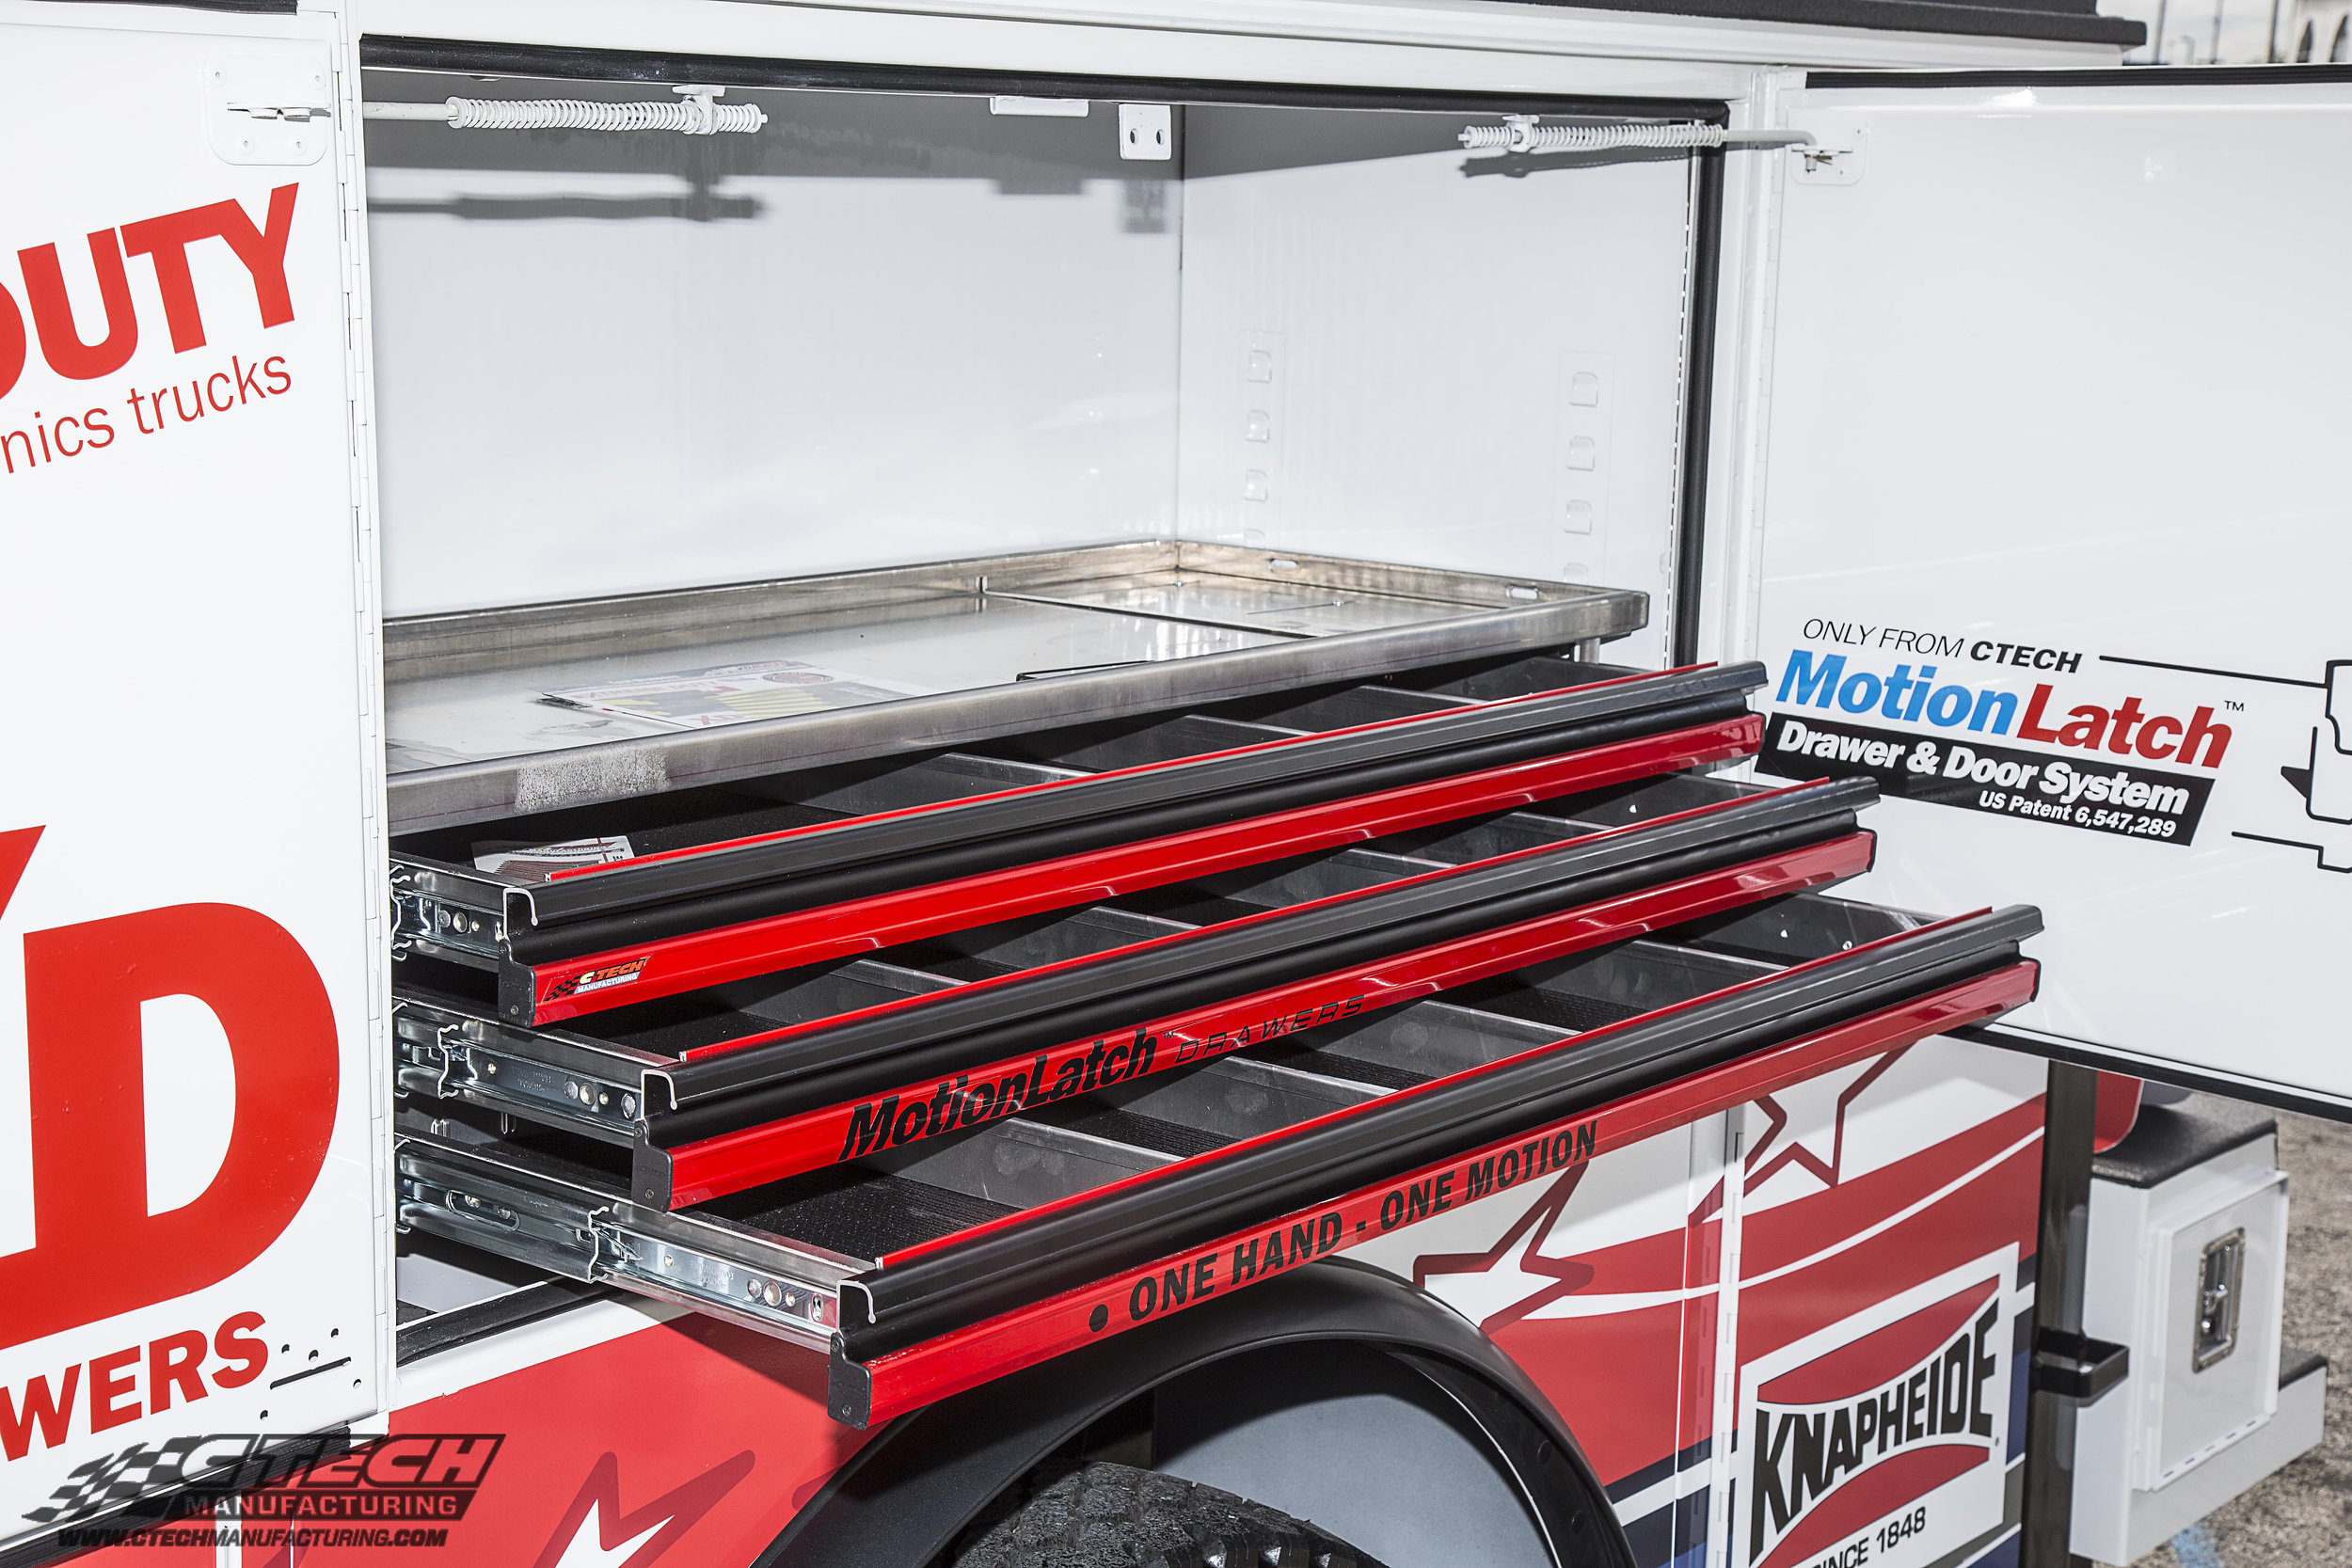 Adding accessible tool storage above the wheel well of your service truck has never been easier. Horizonal compartment drawer units are available ready-to-order from CTech for a variety of different truck body manufacturers.